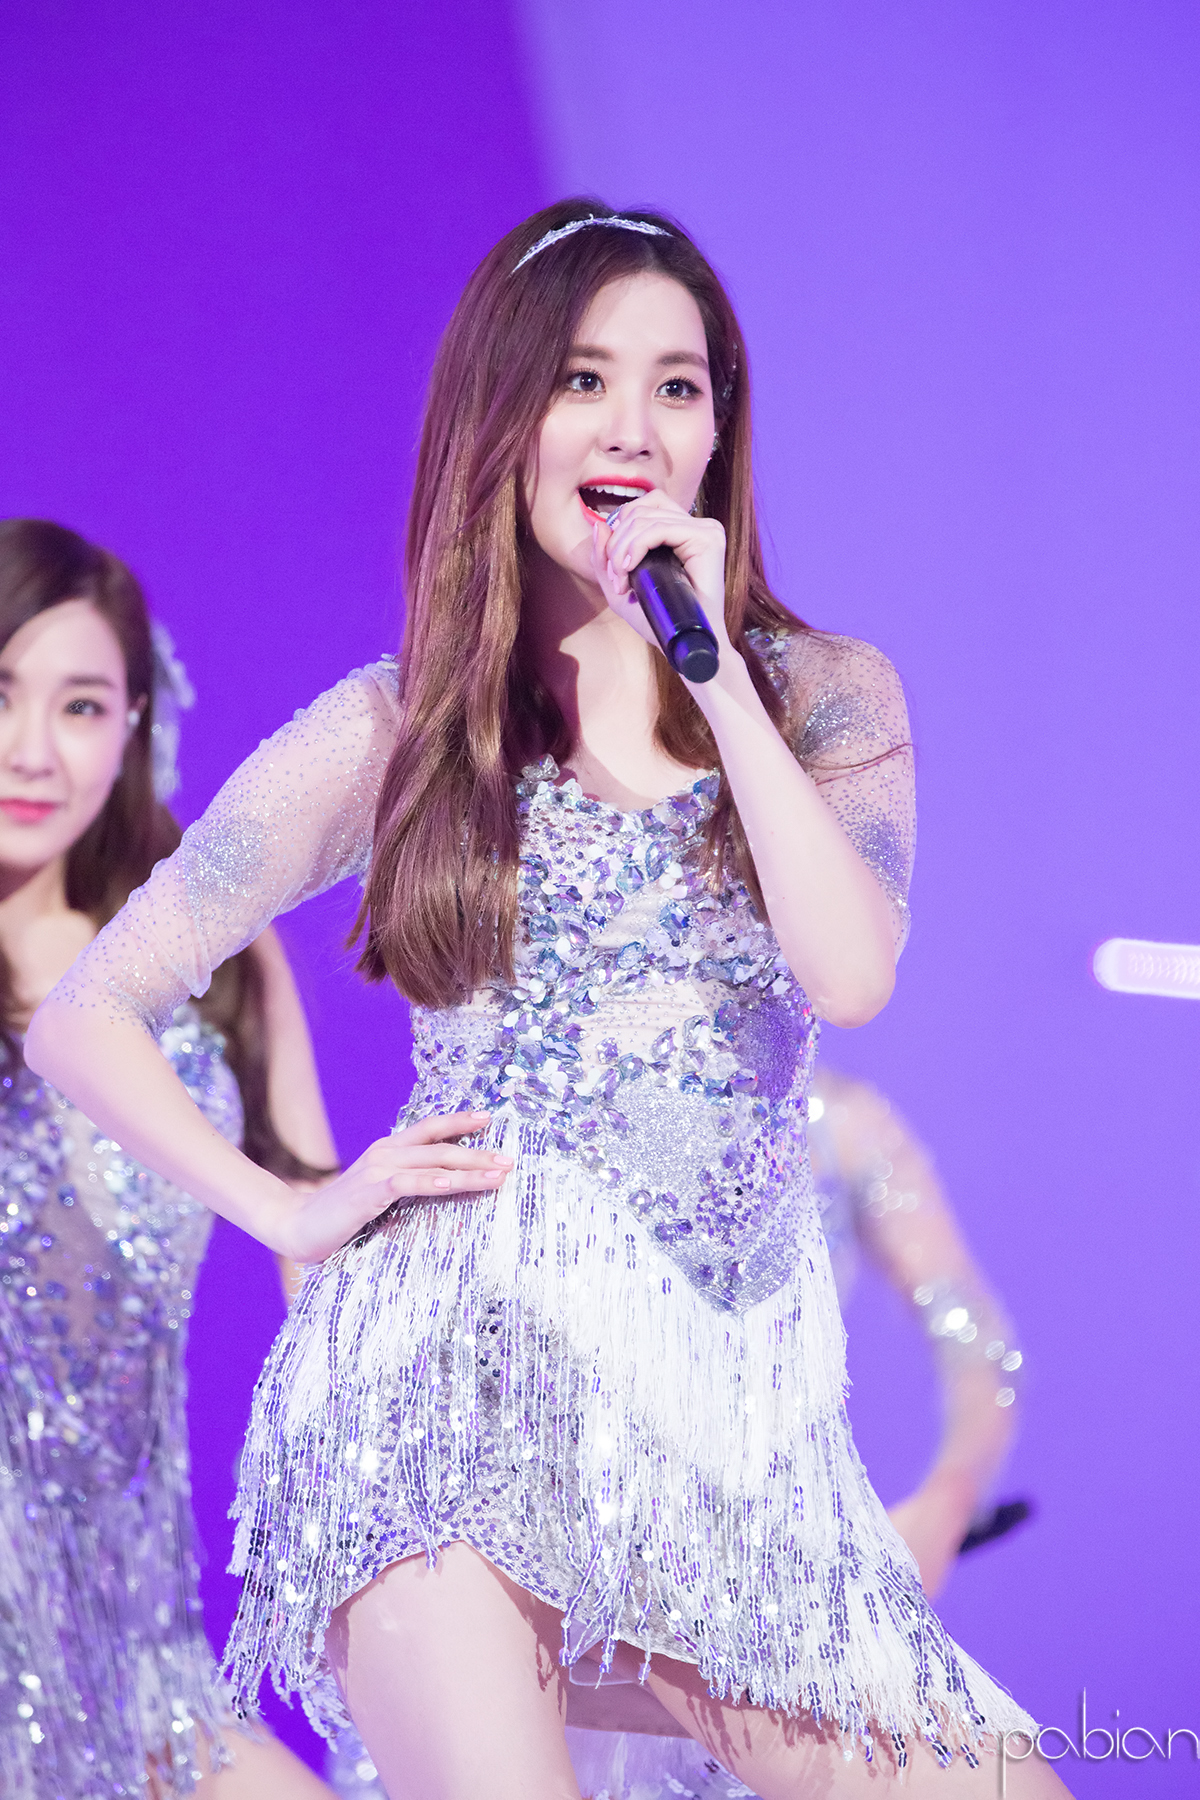 Seohyun Android Iphone Wallpaper 89954 Asiachan Kpop Image Board